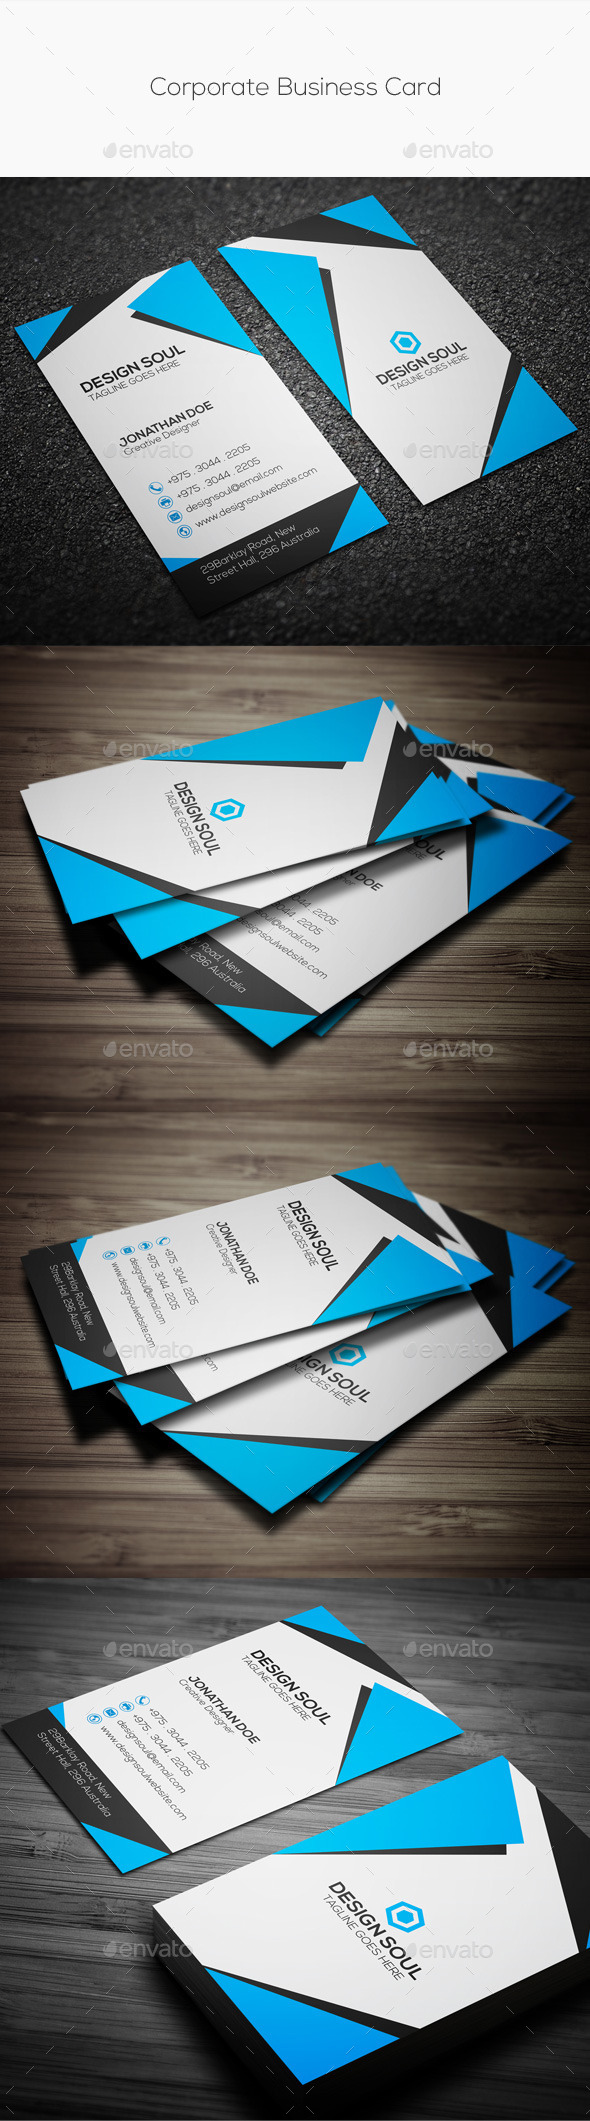 GraphicRiver Corporate Business Card 10132049